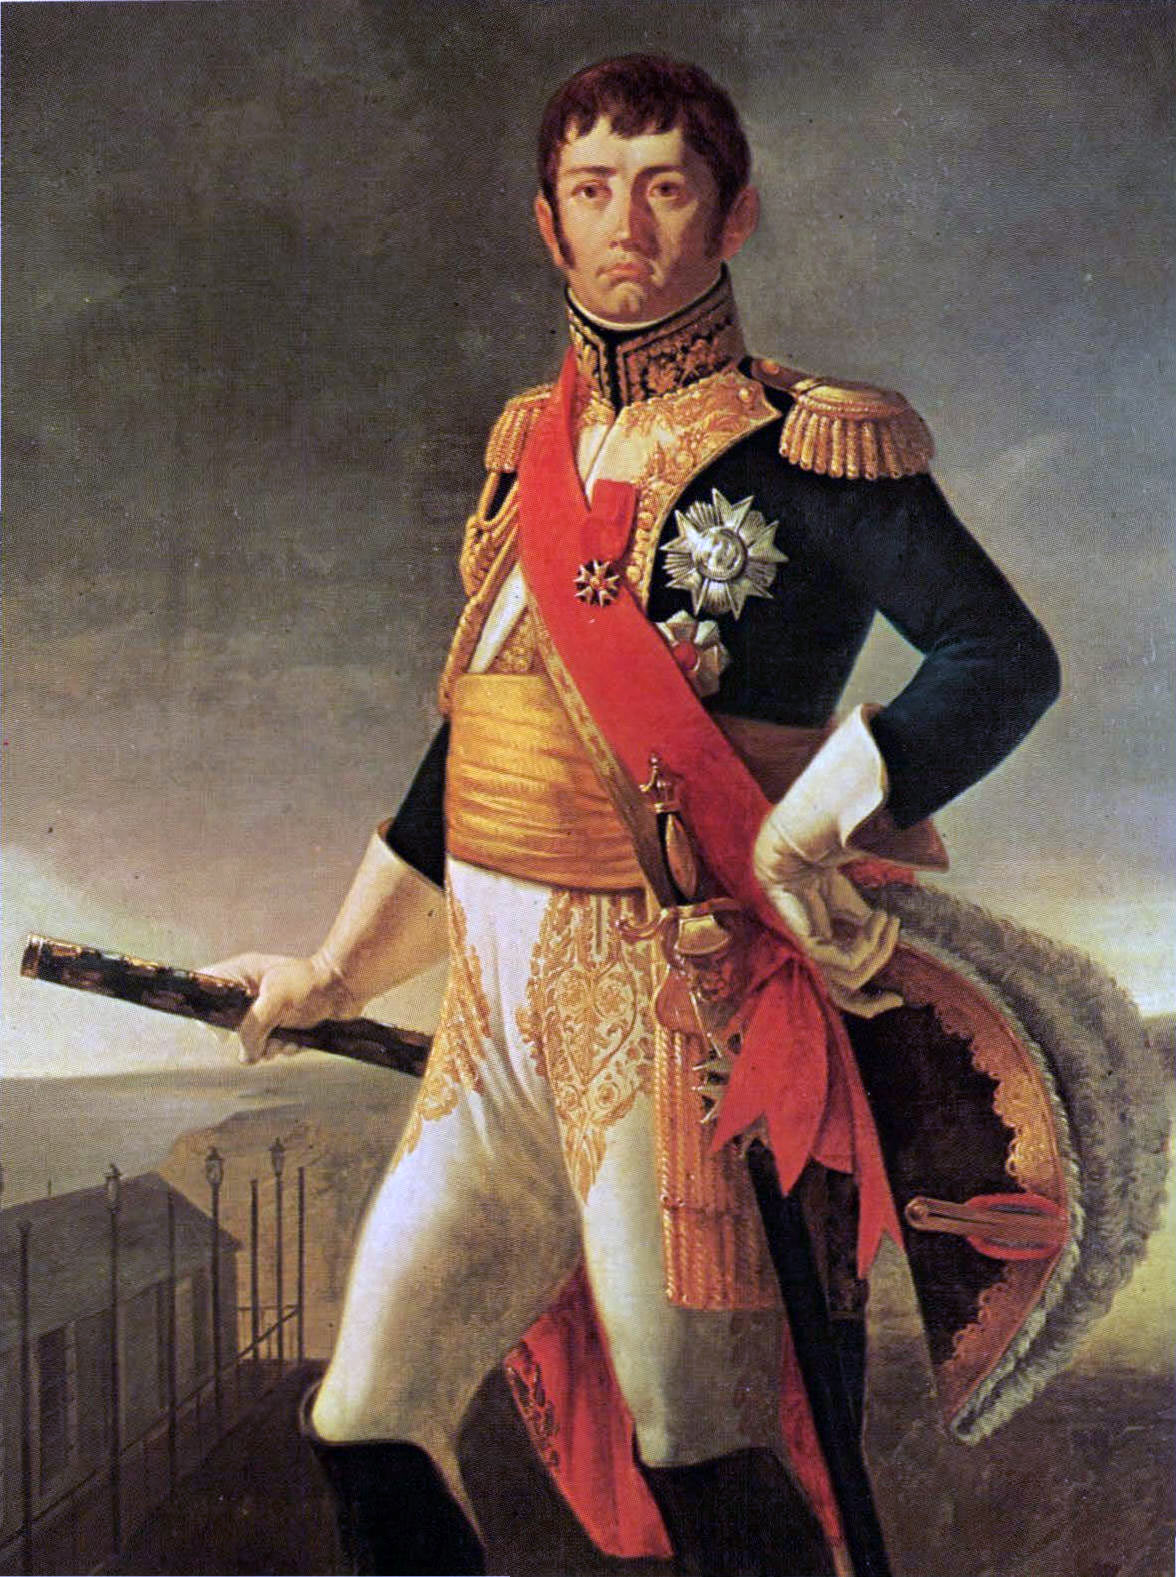 Marshal Soult French Commander at the Battle of Albuera on 16th May 1811 in the Peninsular War